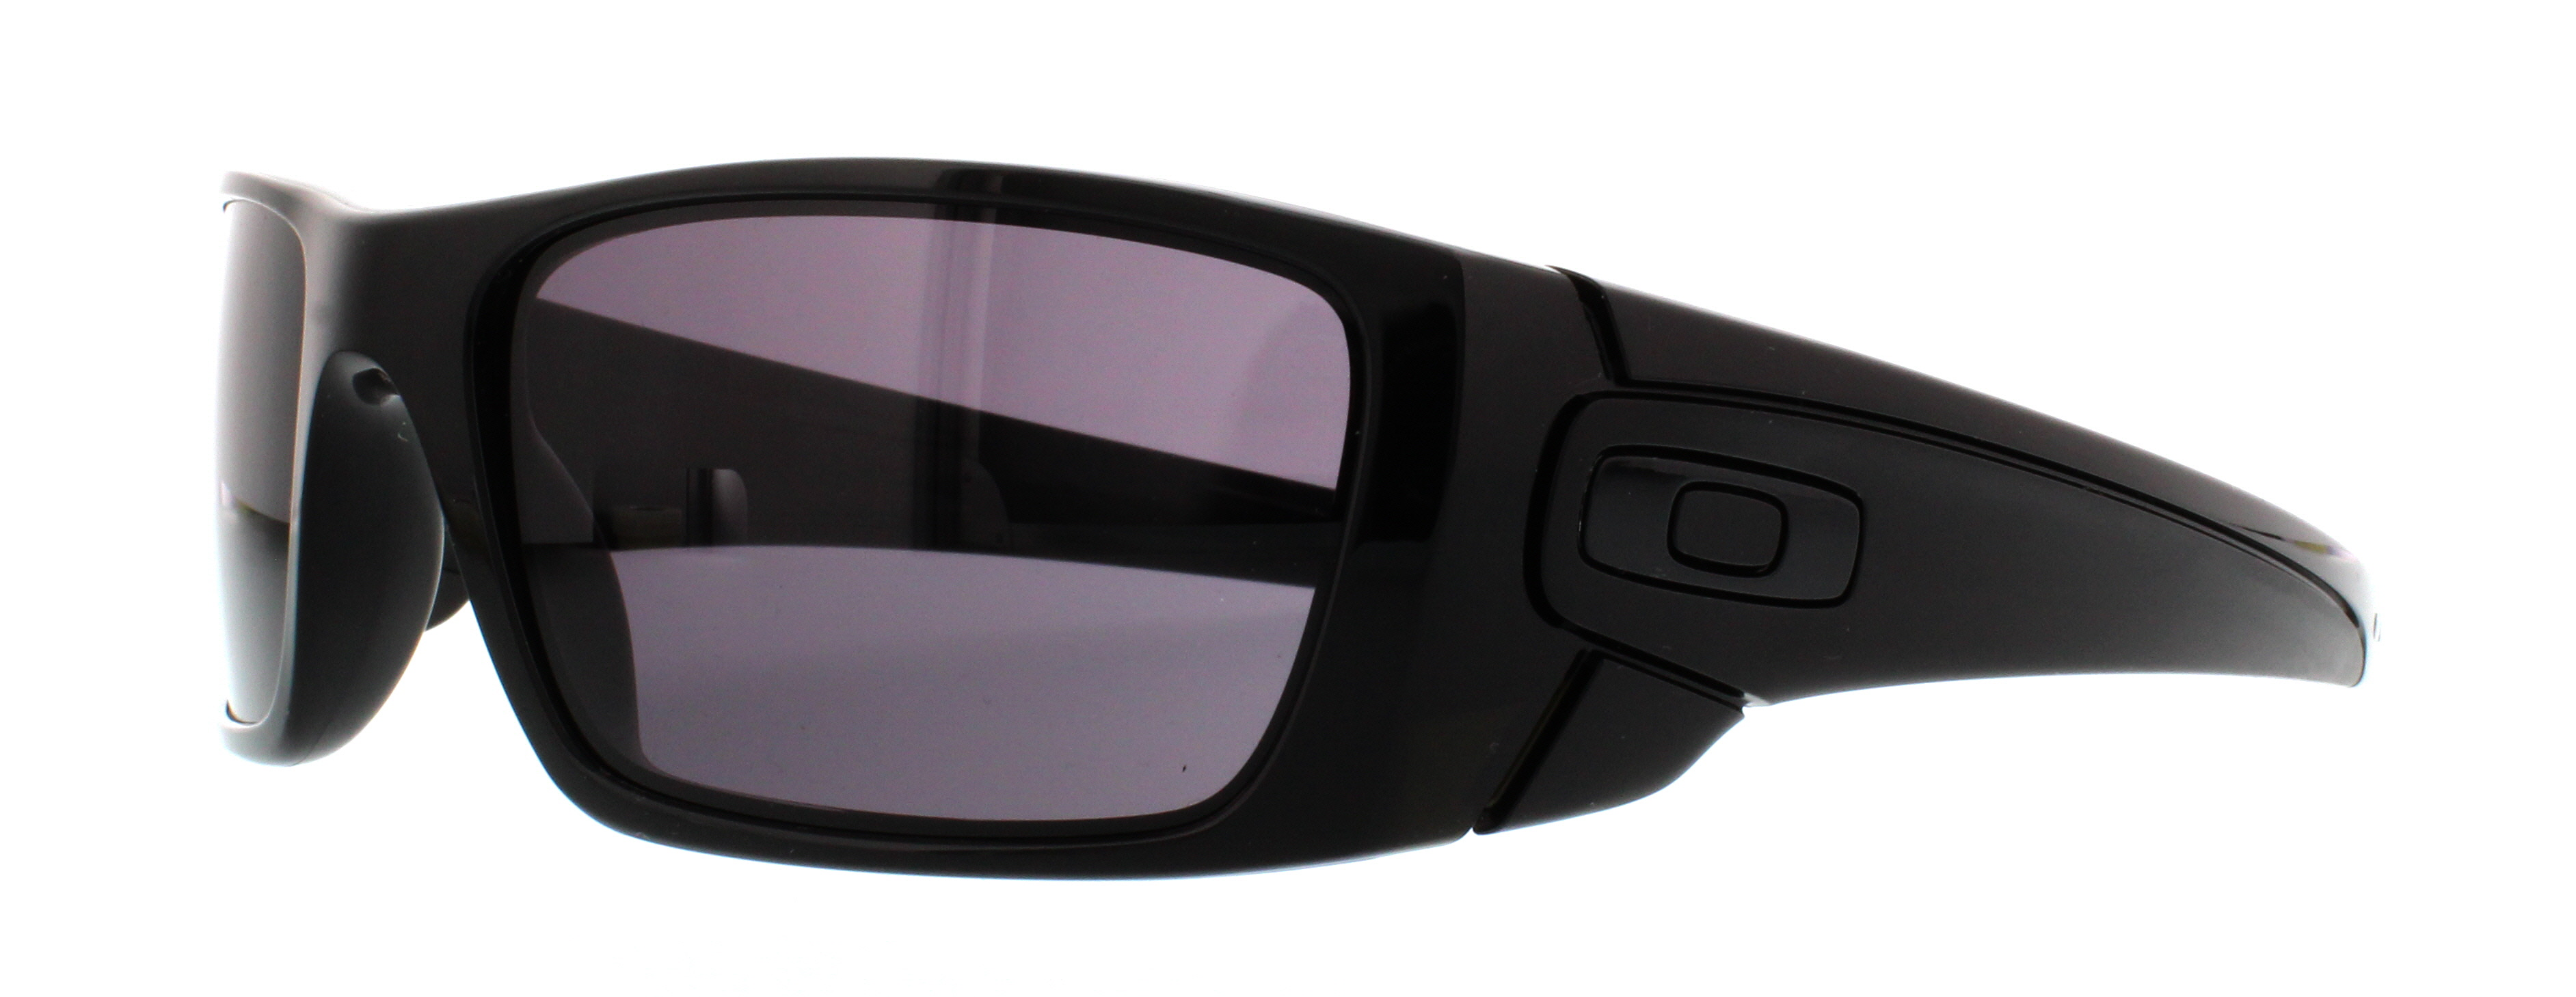 (OO9096-01) Polished Black